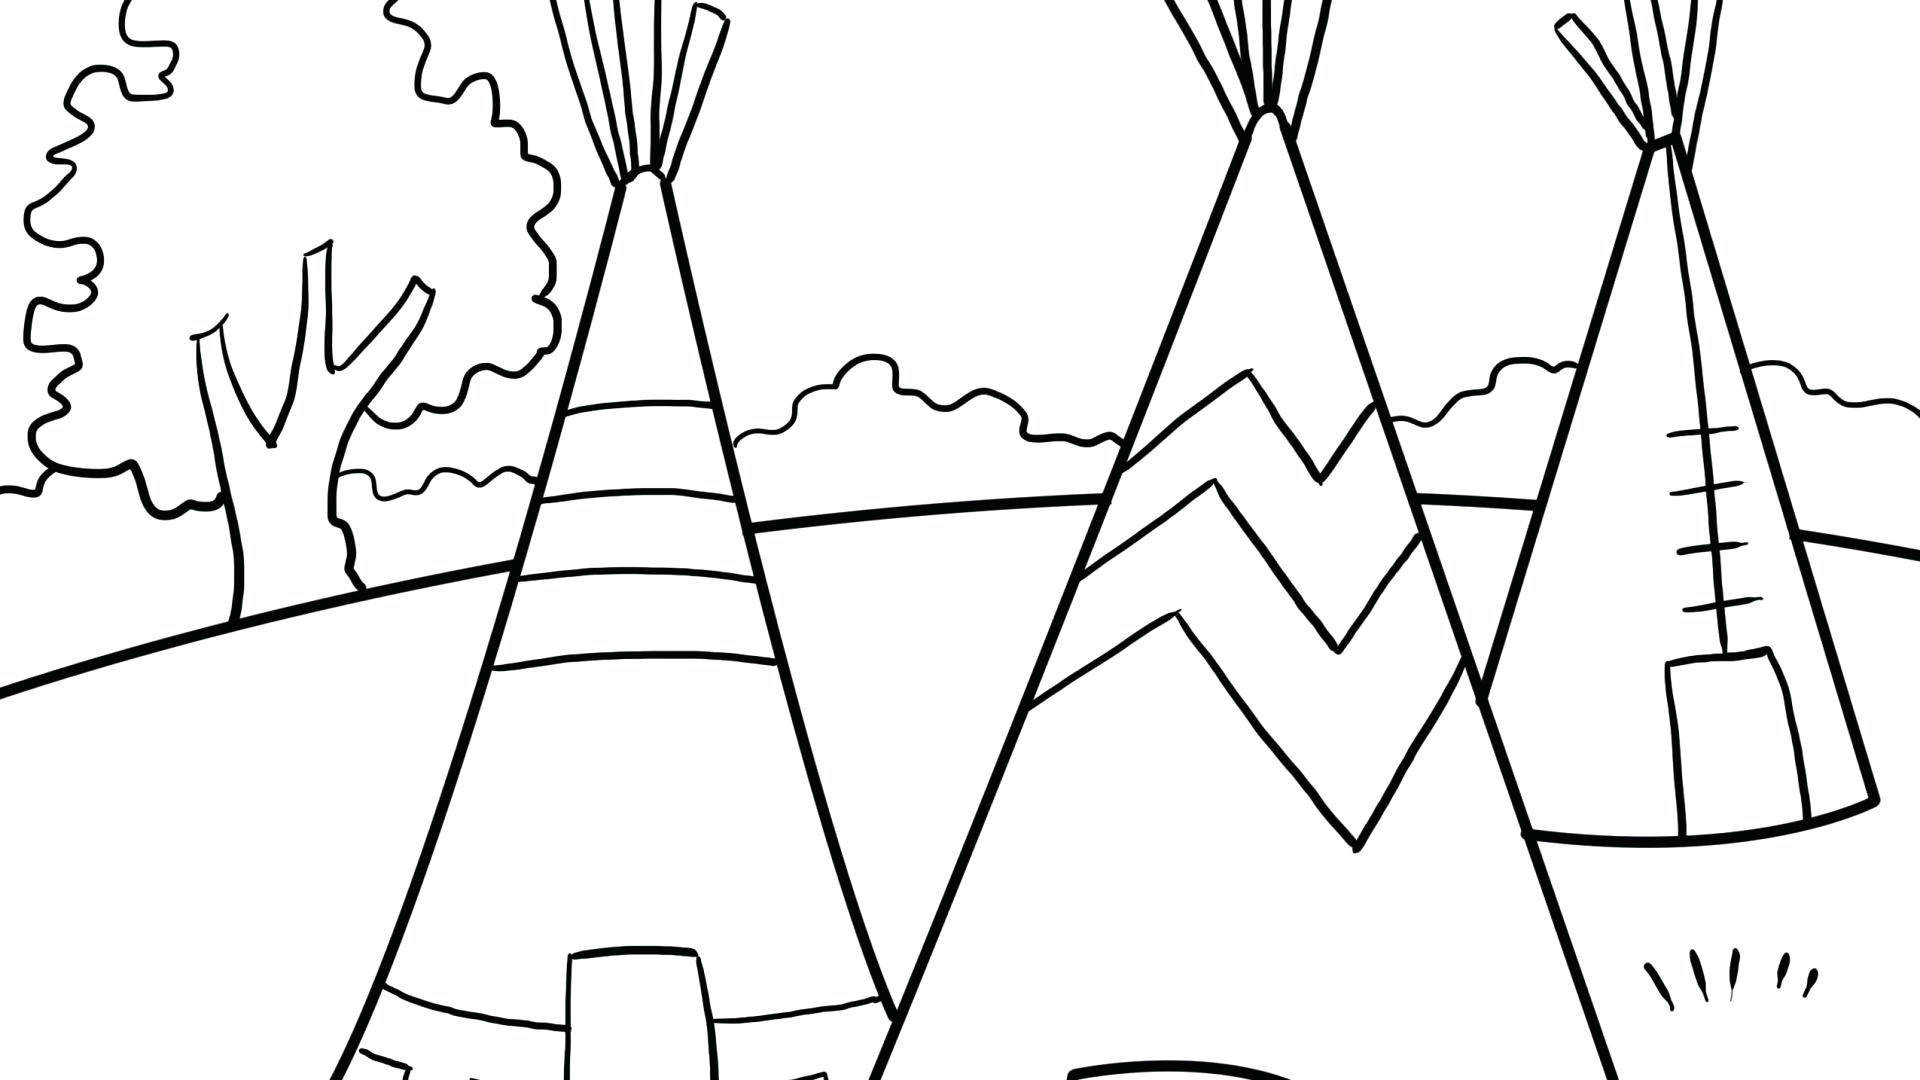 Wyoming State Tree Brid Flower And Flag Rodeo Coloring Page